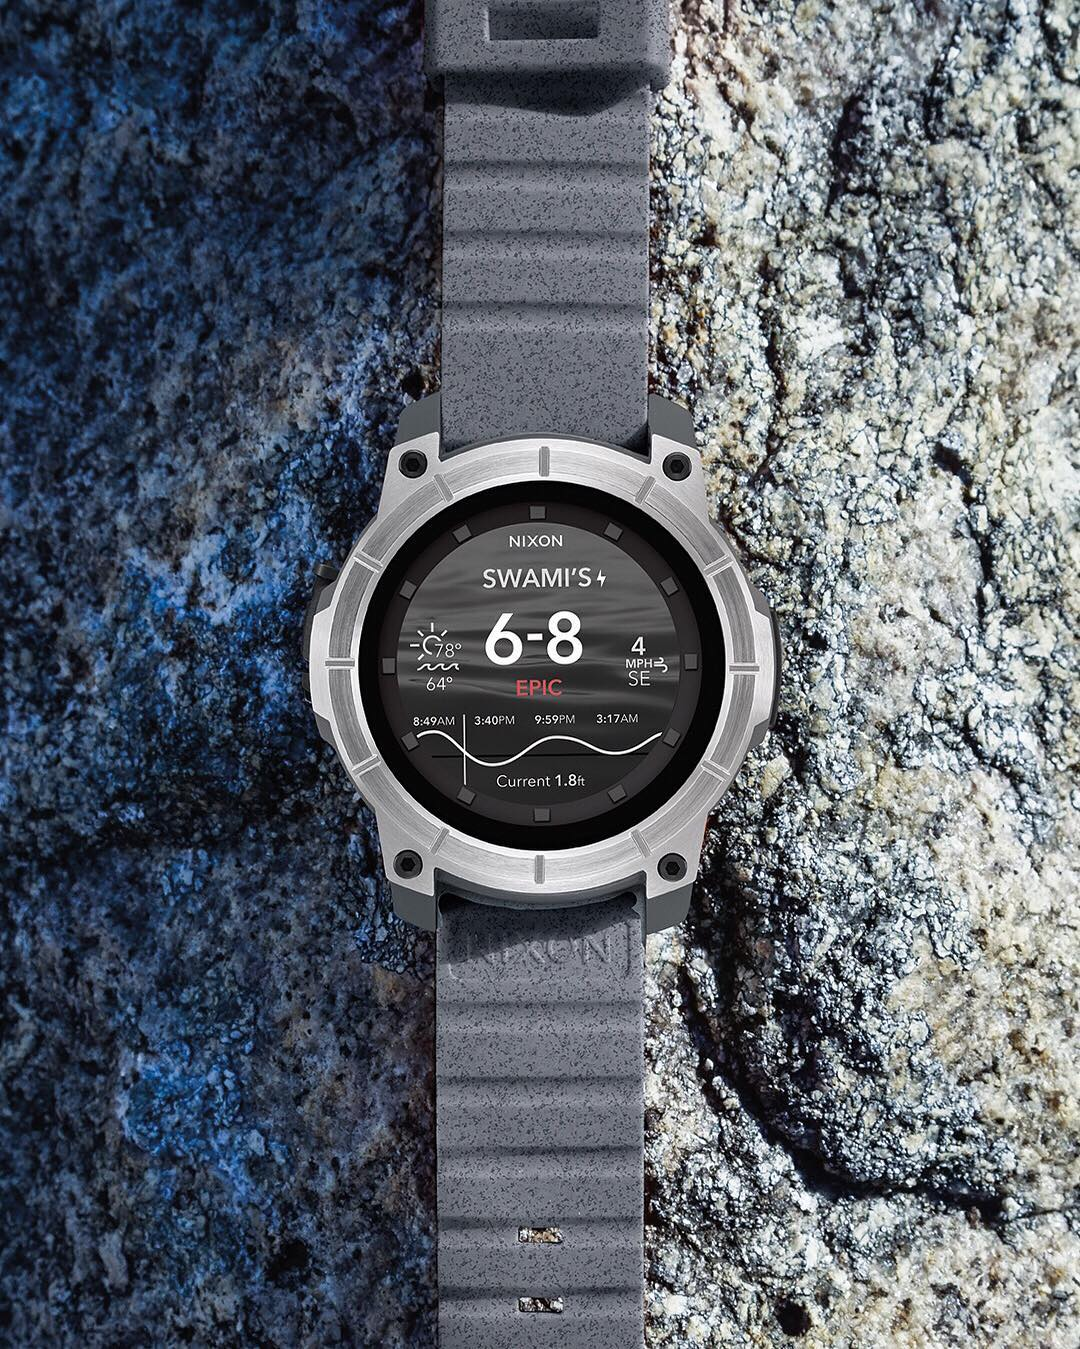 Built smart and built tough, the #Mission can withstand the elements so you can take it with you anywhere: in the water, on the hill, off road and beyond. Available this fall. Stay in the know at nixon.com/mens-smart.